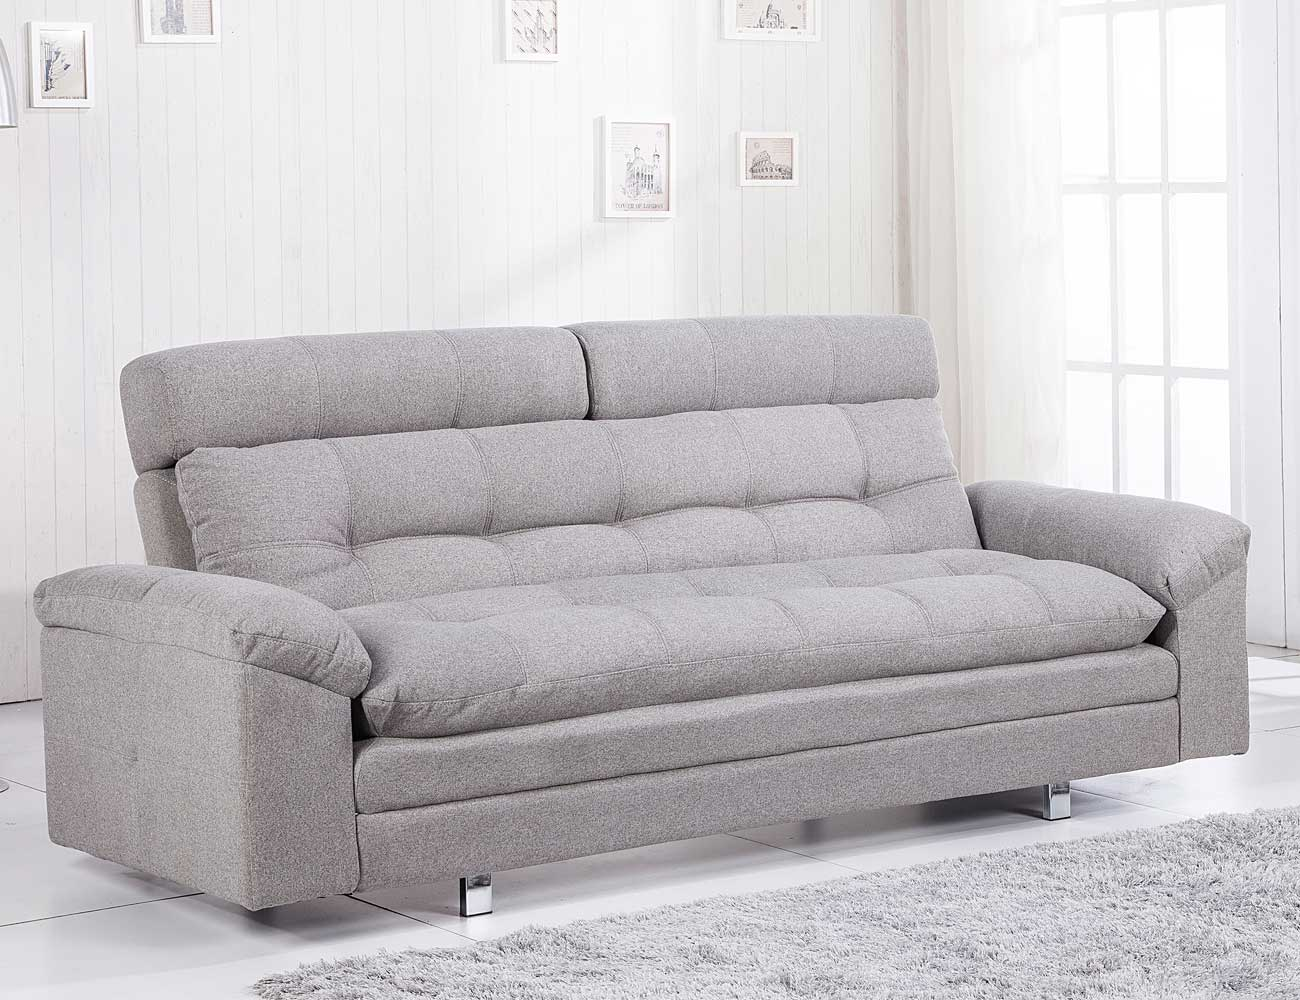 Sofa cama chaiselongue elegance ceniza1